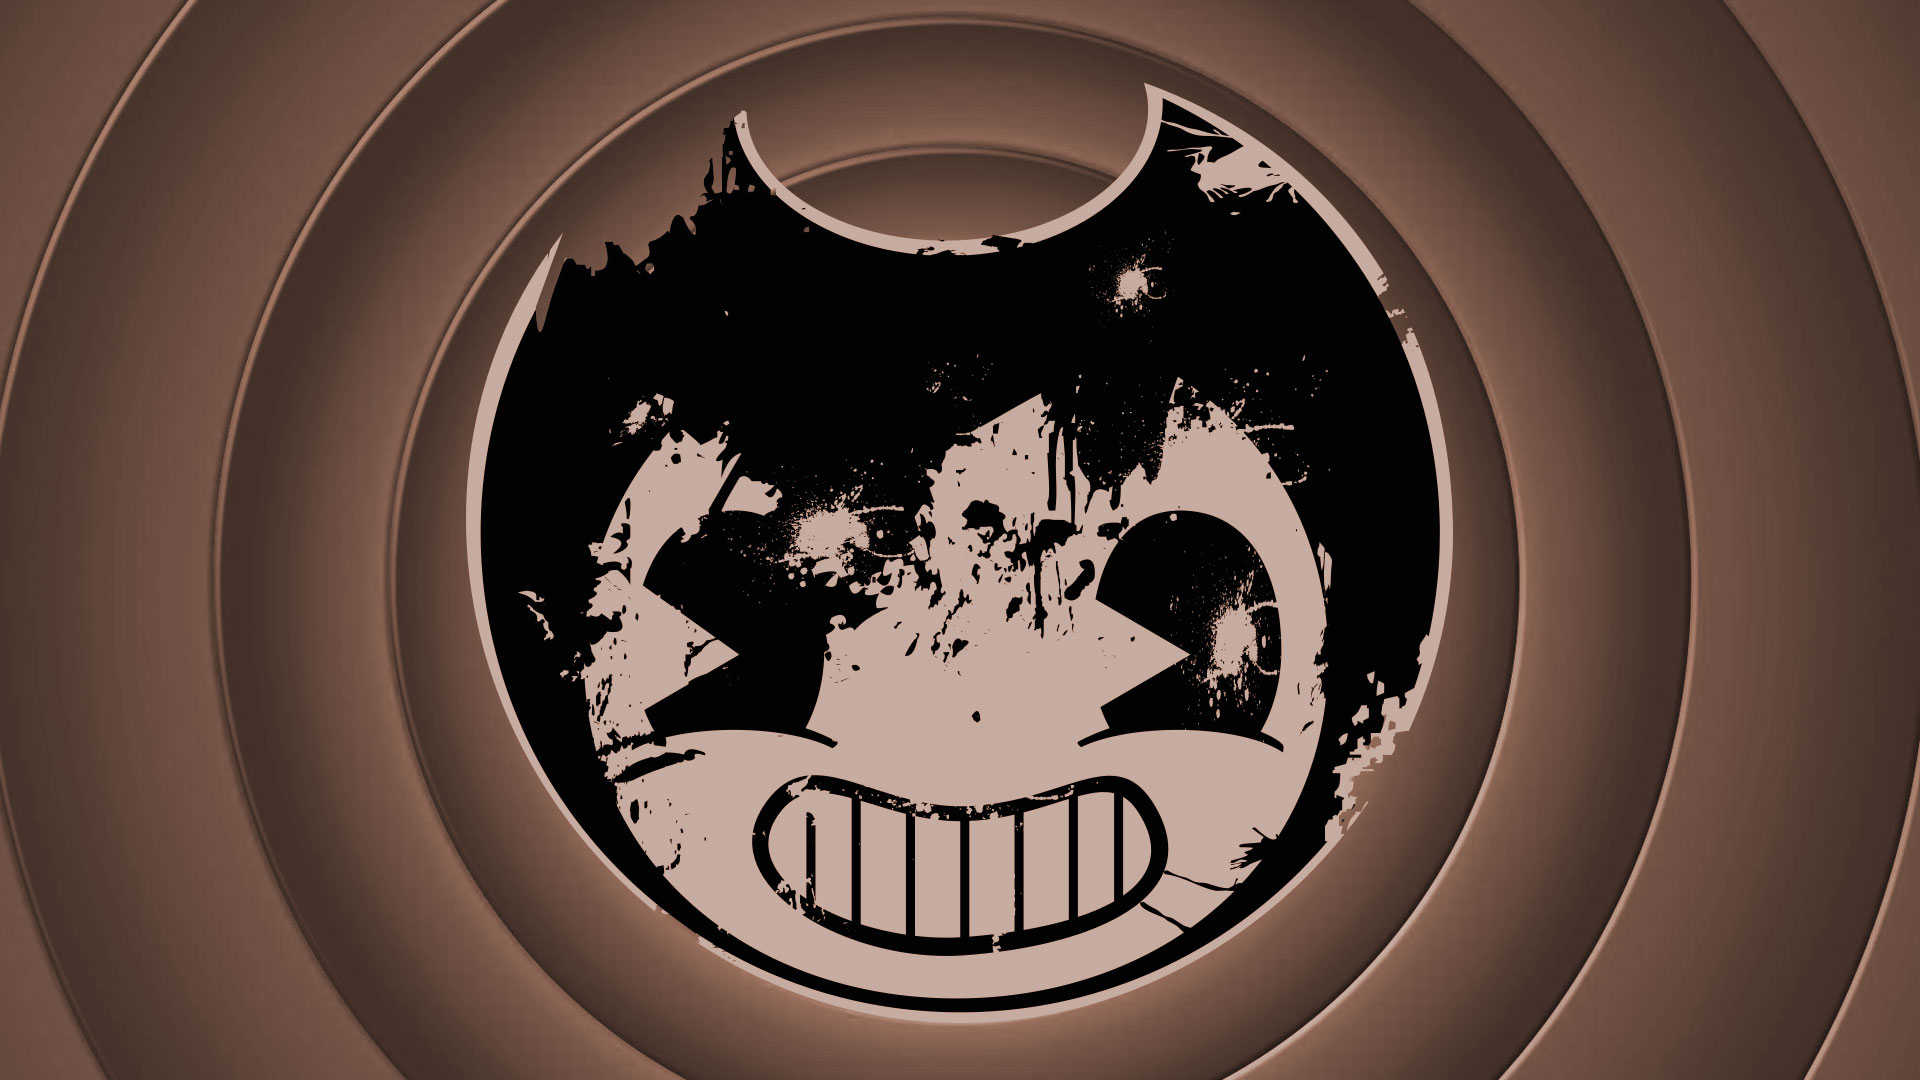 'Bendy and the Ink Machine' Chapter 3 Gameplay